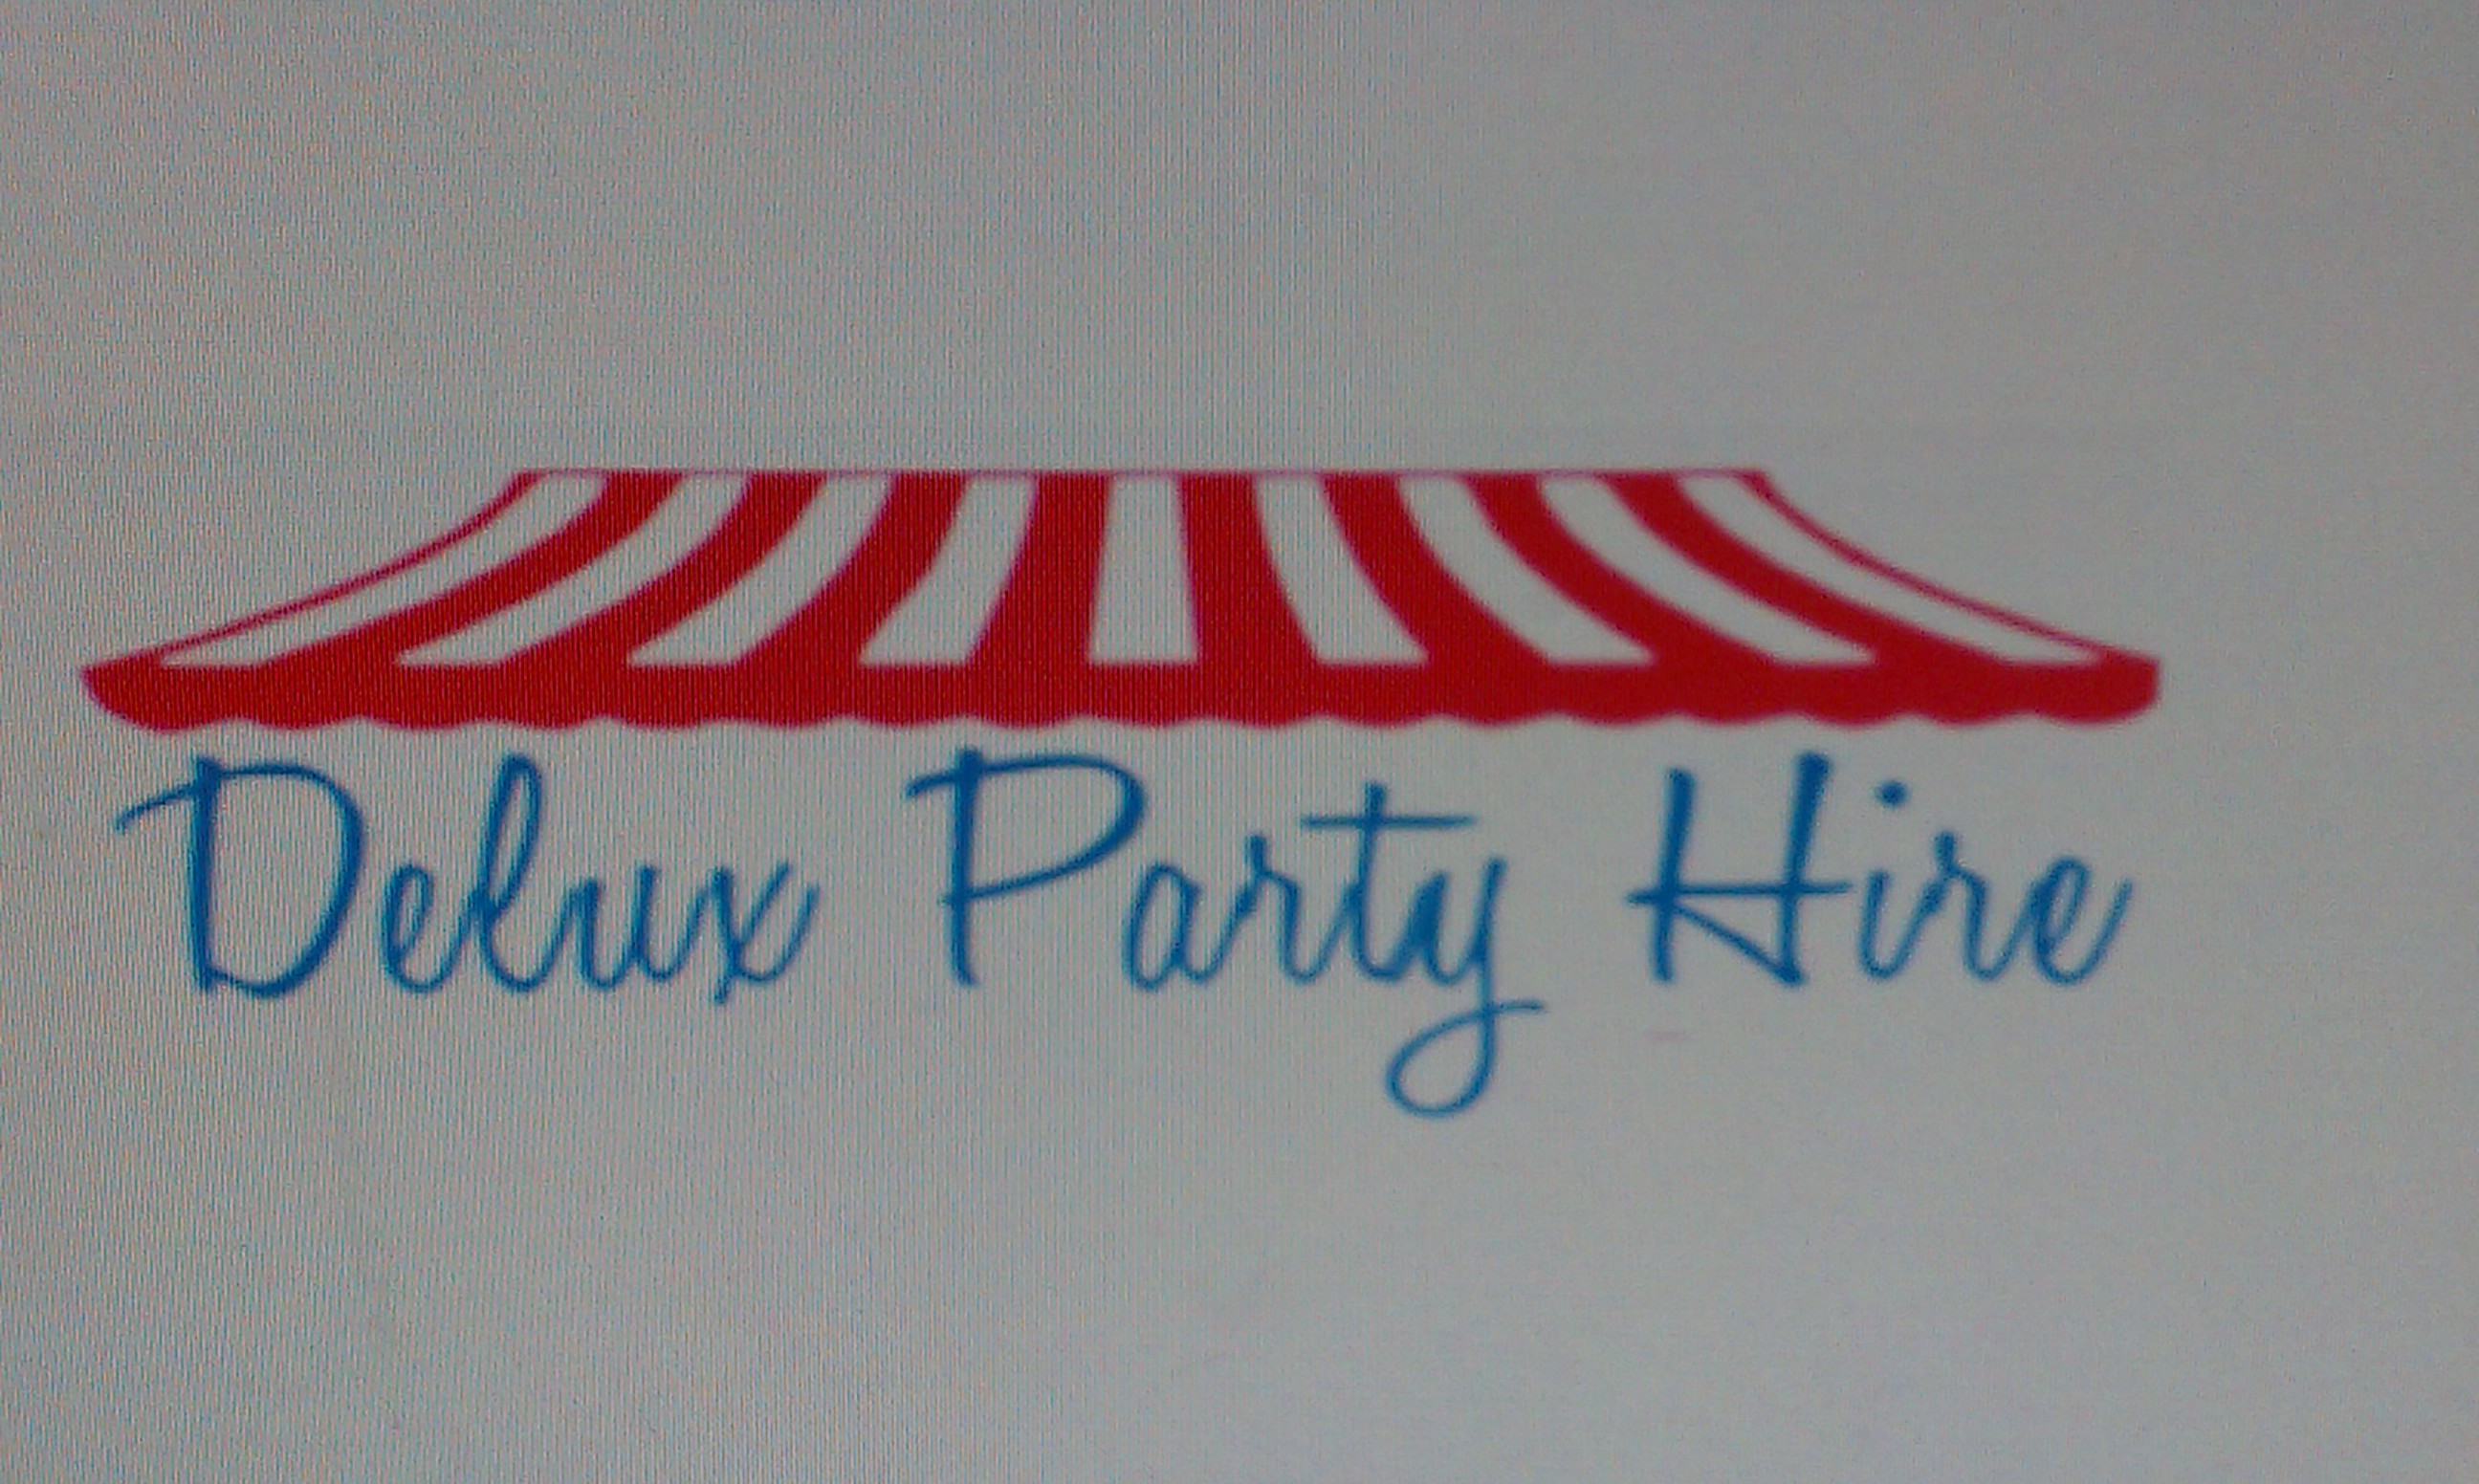 Deluxe Party Hire